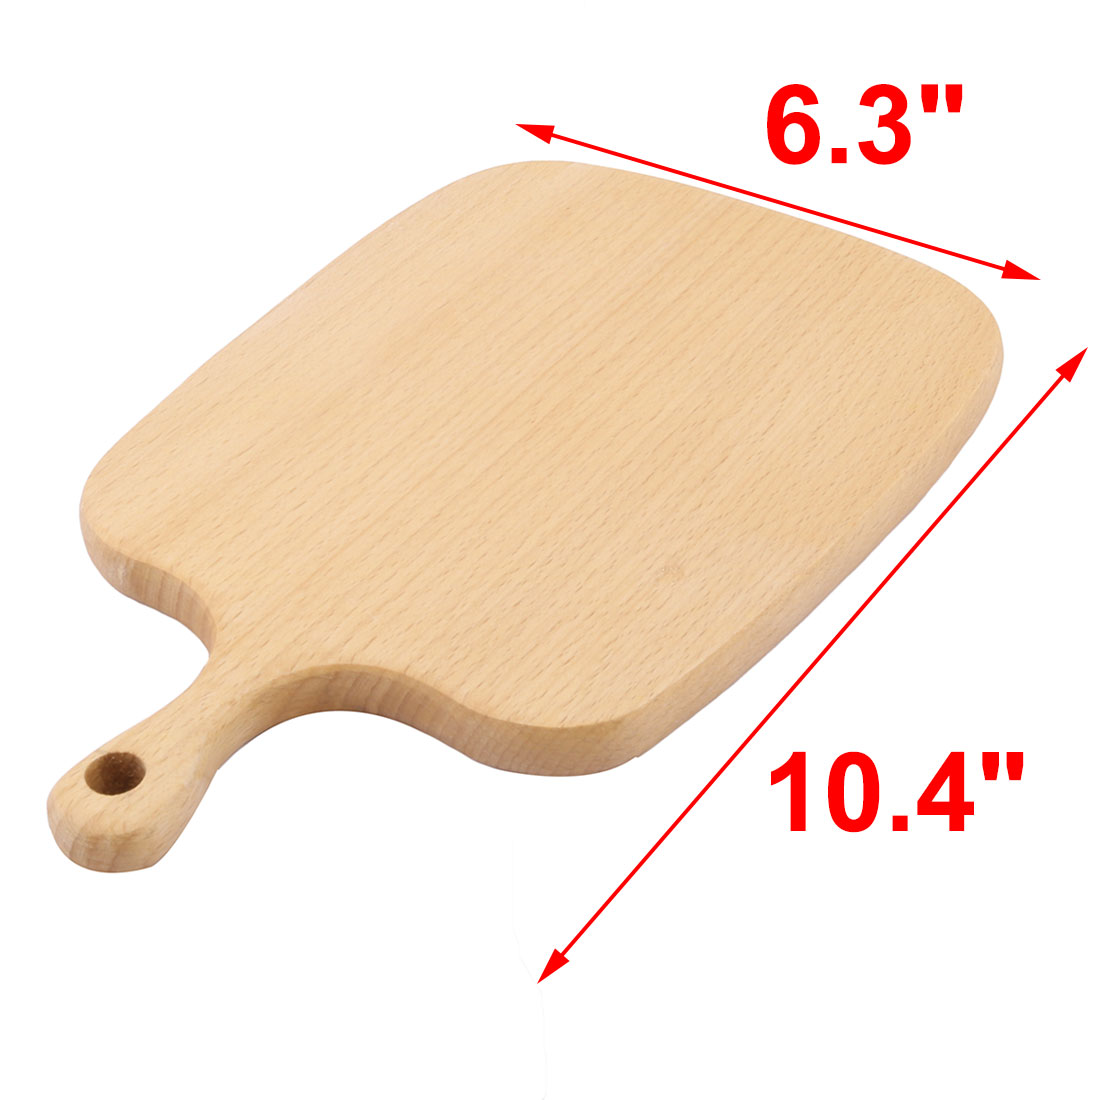 Household Kitchen Wood Food Meat Fish Fruit Tomato Cutting Chopping Board Pad - image 2 de 4